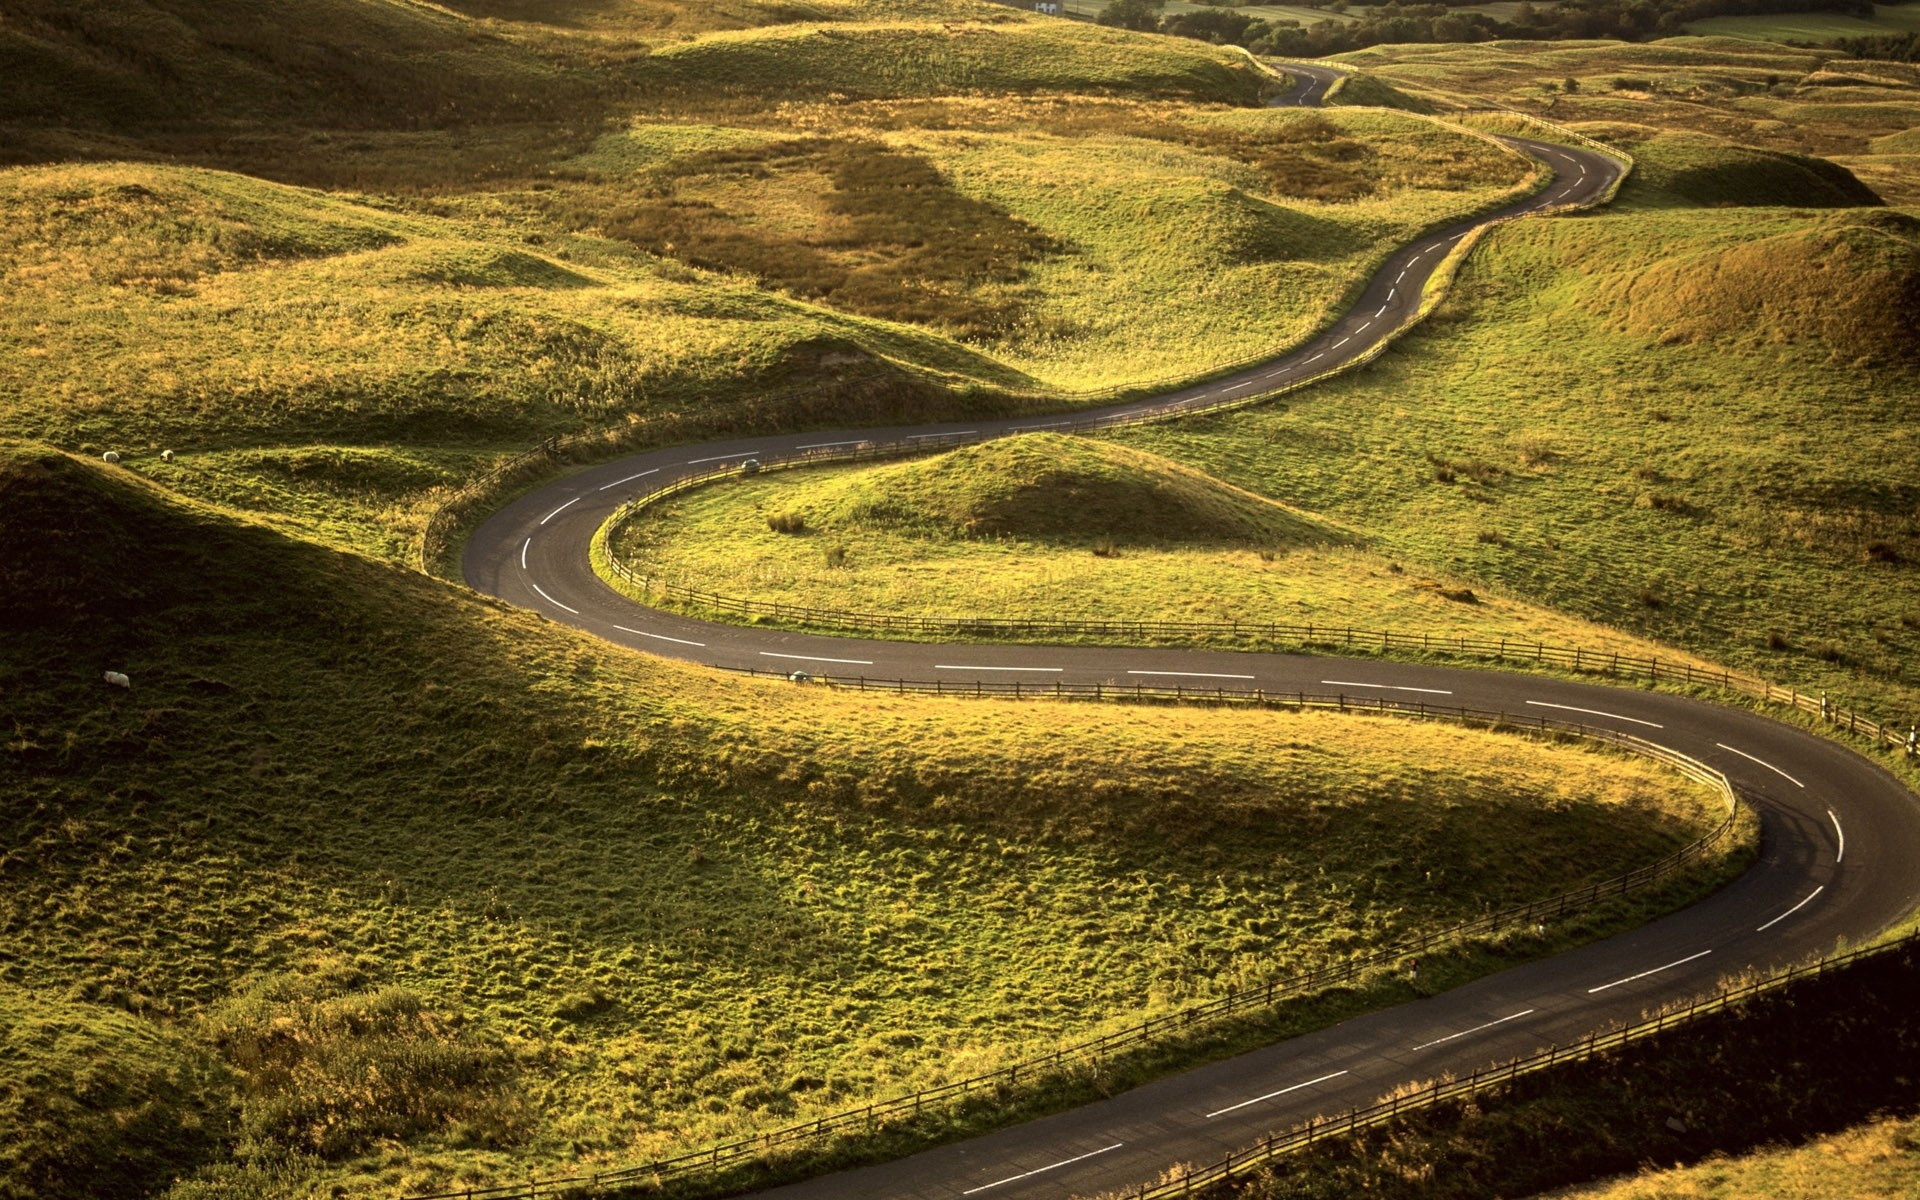 Drawn road curvy Wallpaper http://joyfulpilgrims and Road http://joyfulpilgrims